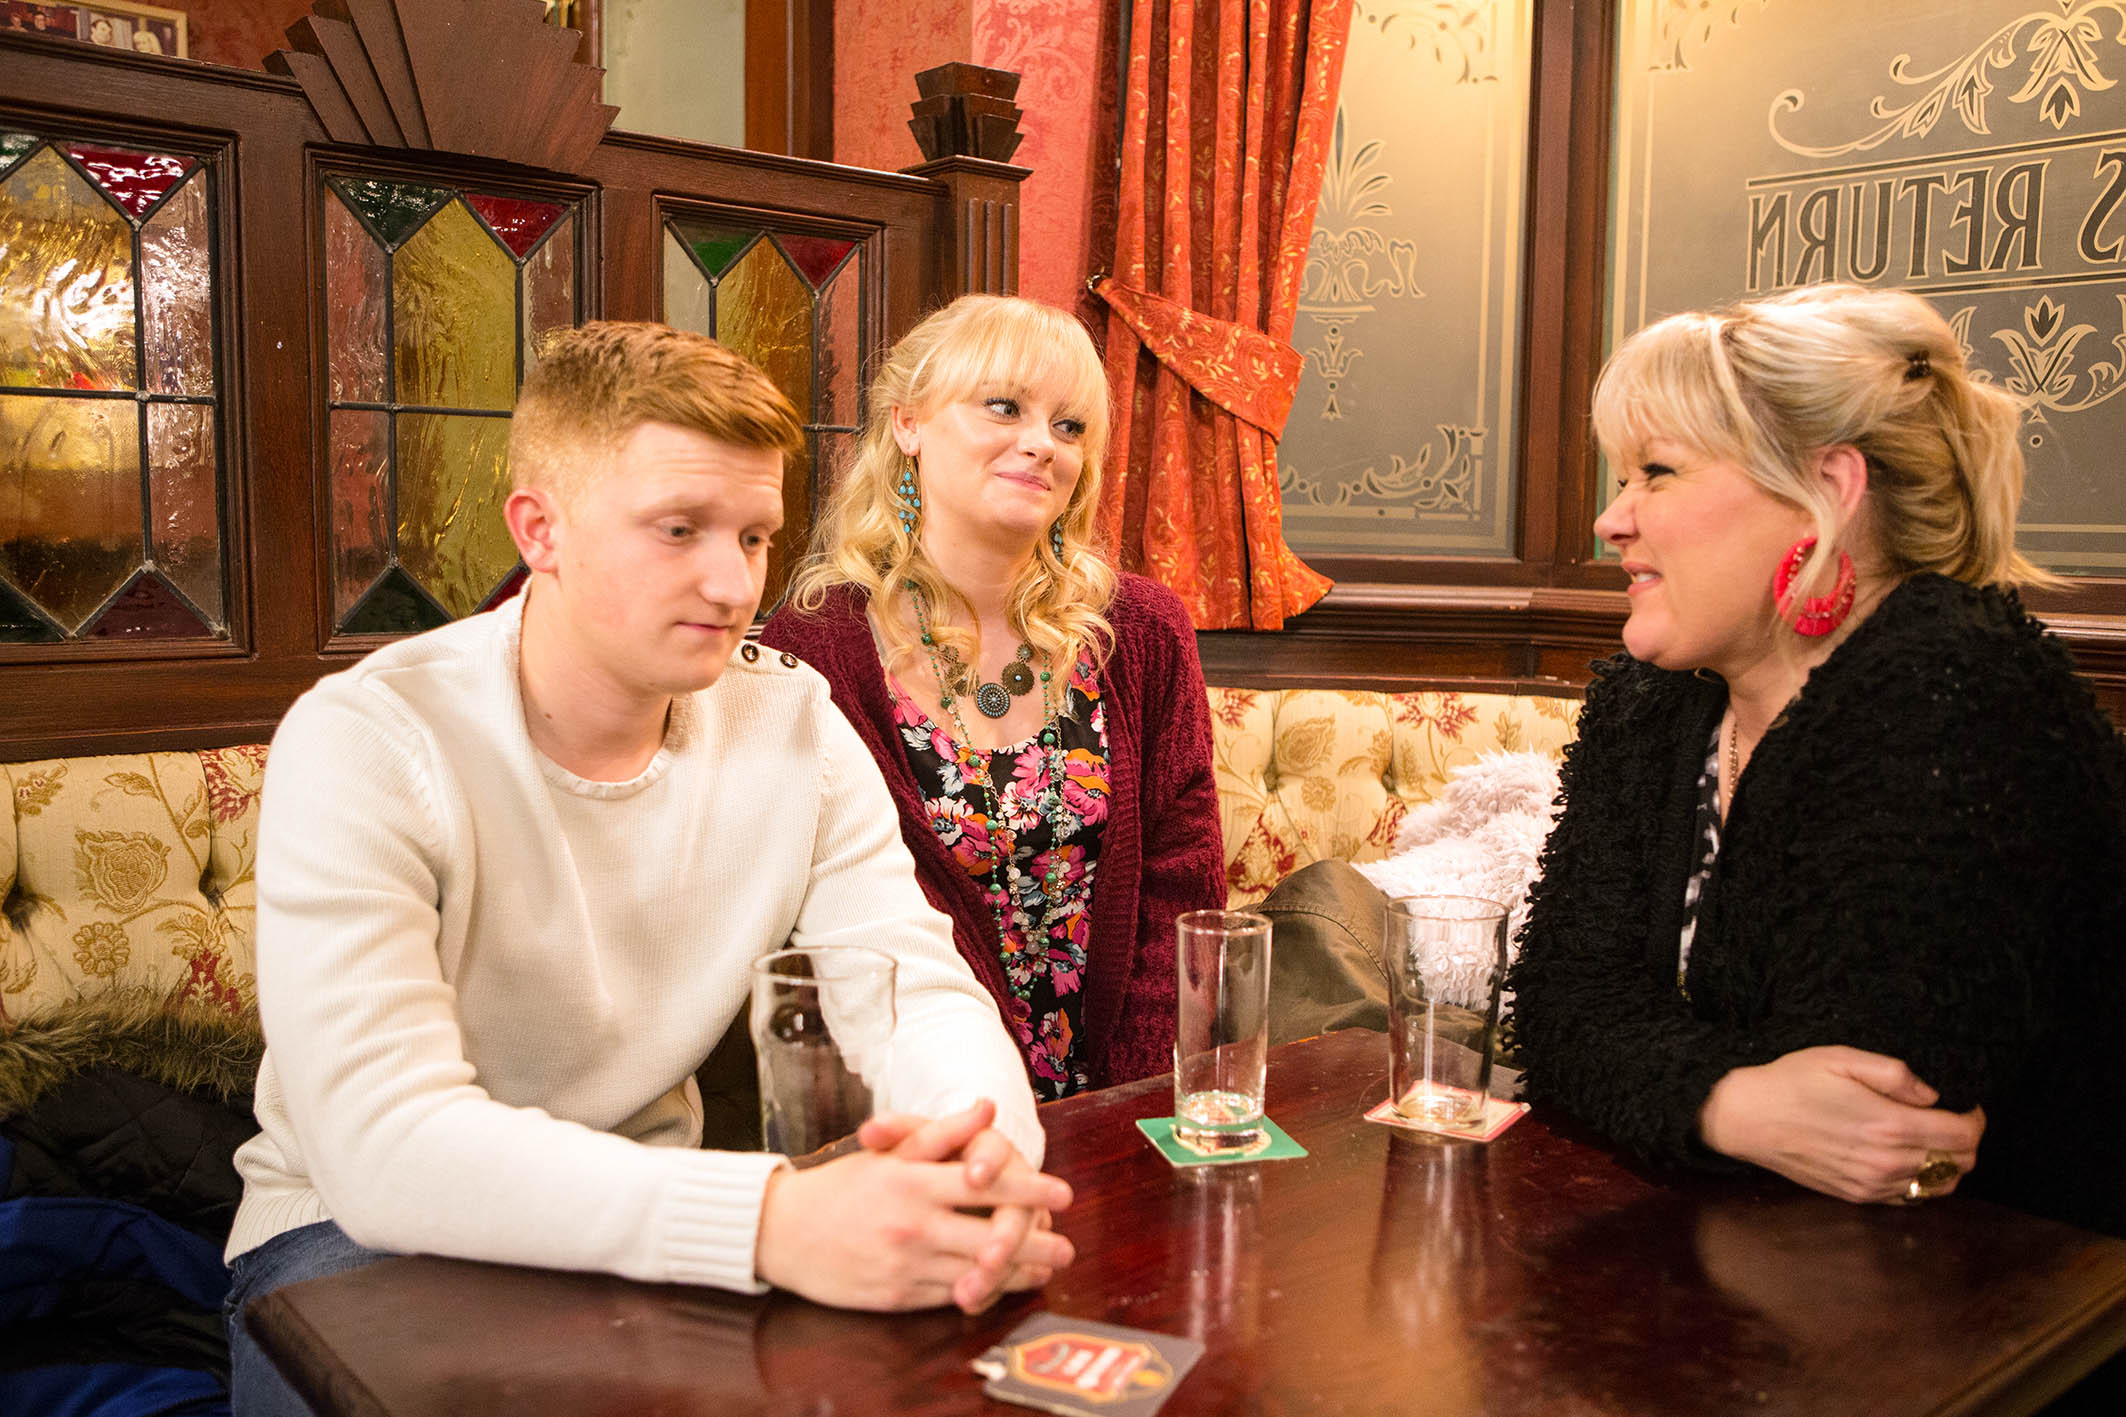 FROM ITV STRICT EMBARGO - No Use Before Tuesday 9 February 2016 Coronation Street - Ep 8840 Monday 15 February 2015 - 2nd Ep Sinead Tinker [KATIE McGLYNN] admits she's nervous about her forthcoming modelling assignment. Beth Sutherland [LISA GEORGE] reckons she'll be fantastic whilst Chesney Battersby's [SAM ASTON] less enthusiastic Picture contact: david.crook@itv.com on 0161 952 6214 Photographer - Mark Bruce This photograph is (C) ITV Plc and can only be reproduced for editorial purposes directly in connection with the programme or event mentioned above, or ITV plc. Once made available by ITV plc Picture Desk, this photograph can be reproduced once only up until the transmission [TX] date and no reproduction fee will be charged. Any subsequent usage may incur a fee. This photograph must not be manipulated [excluding basic cropping] in a manner which alters the visual appearance of the person photographed deemed detrimental or inappropriate by ITV plc Picture Desk. This photograph must not be syndicated to any other company, publication or website, or permanently archived, without the express written permission of ITV Plc Picture Desk. Full Terms and conditions are available on the website www.itvpictur